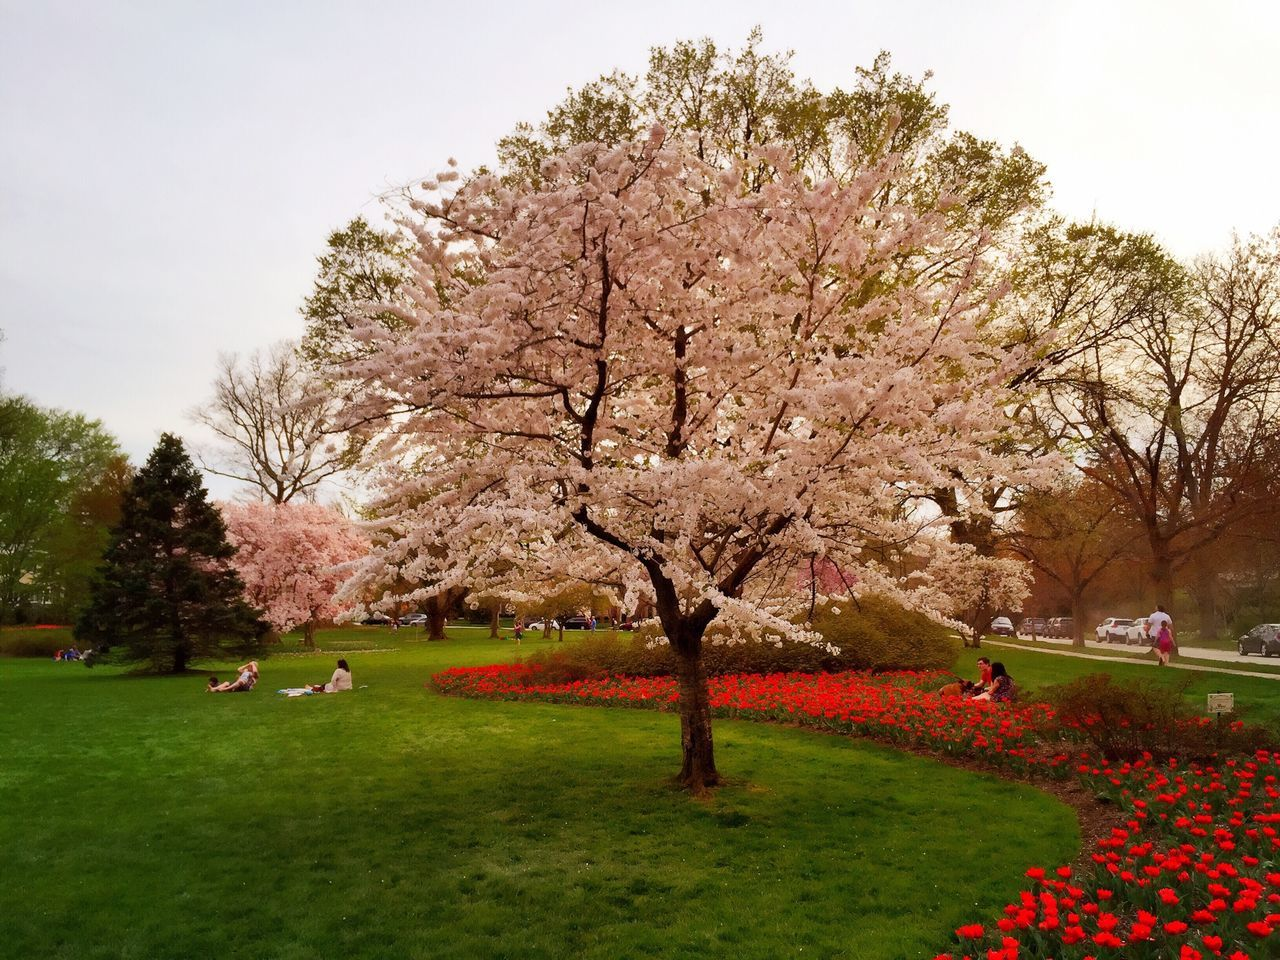 Beautiful stock photos of cherry, , Baltimore, Cherry Blossom, Cherry Tree